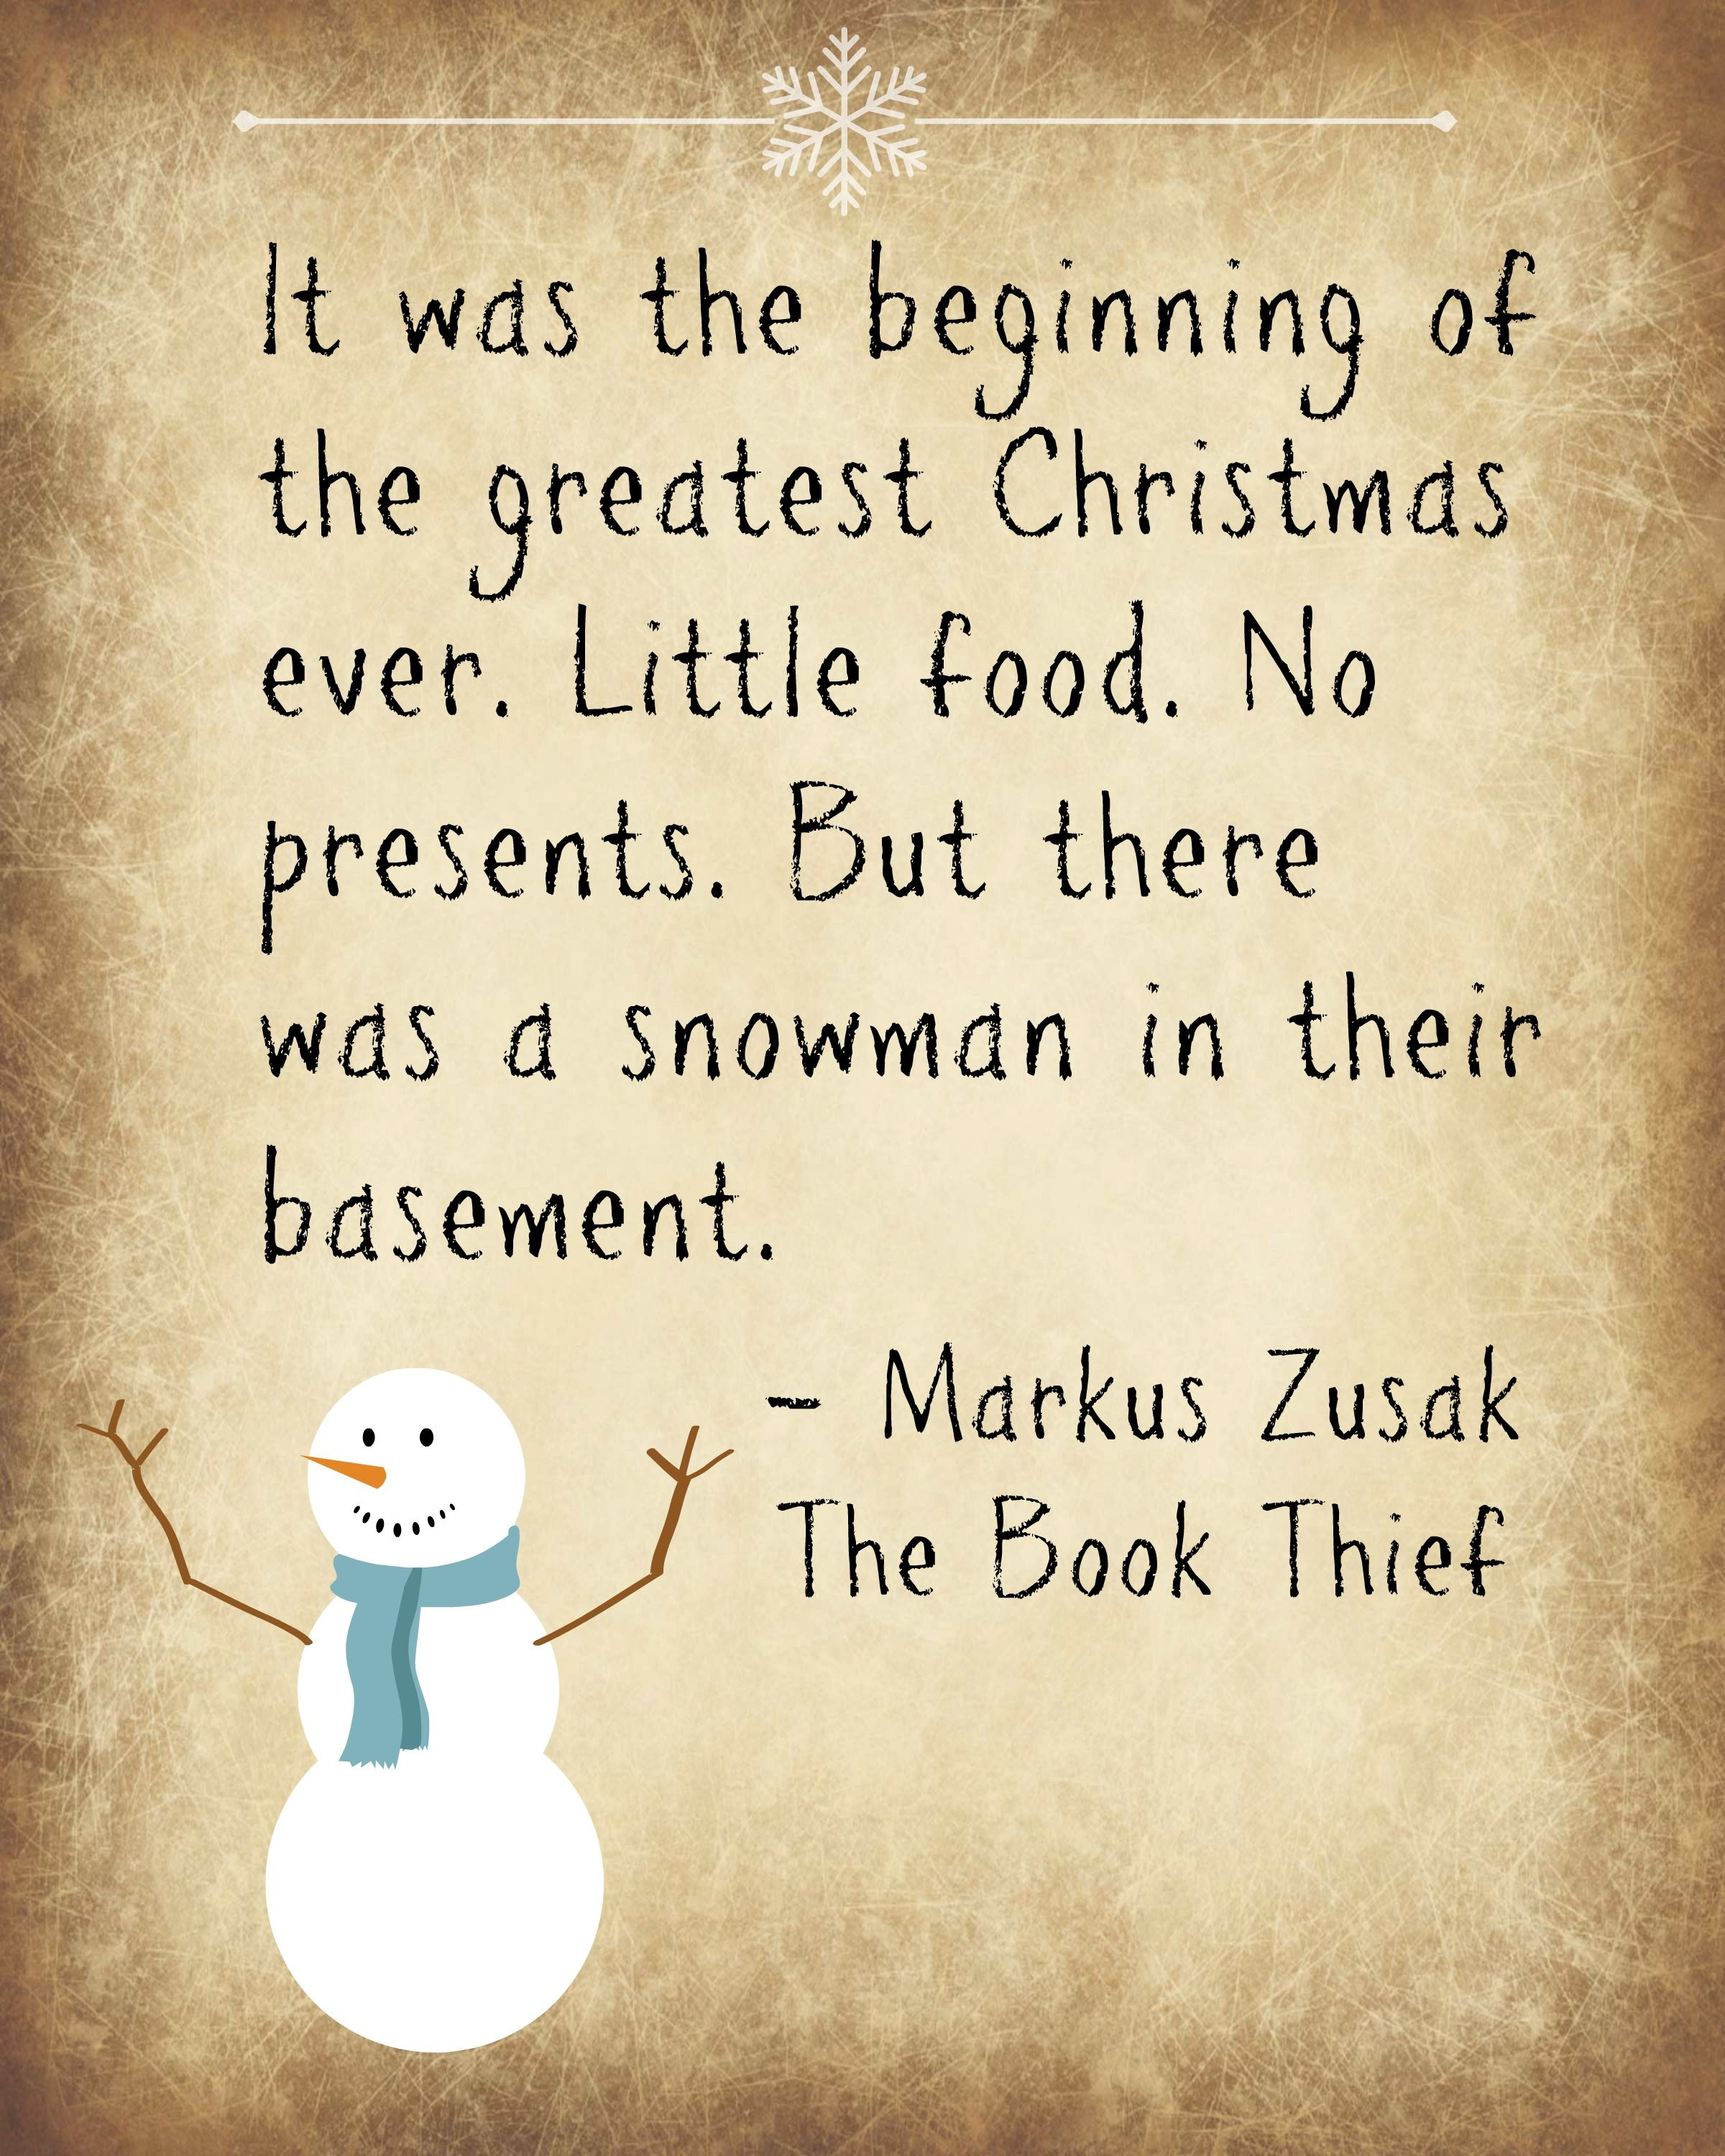 Christmas Book Quotes: Just About Anyone Would Have Thought This Was A Horrible